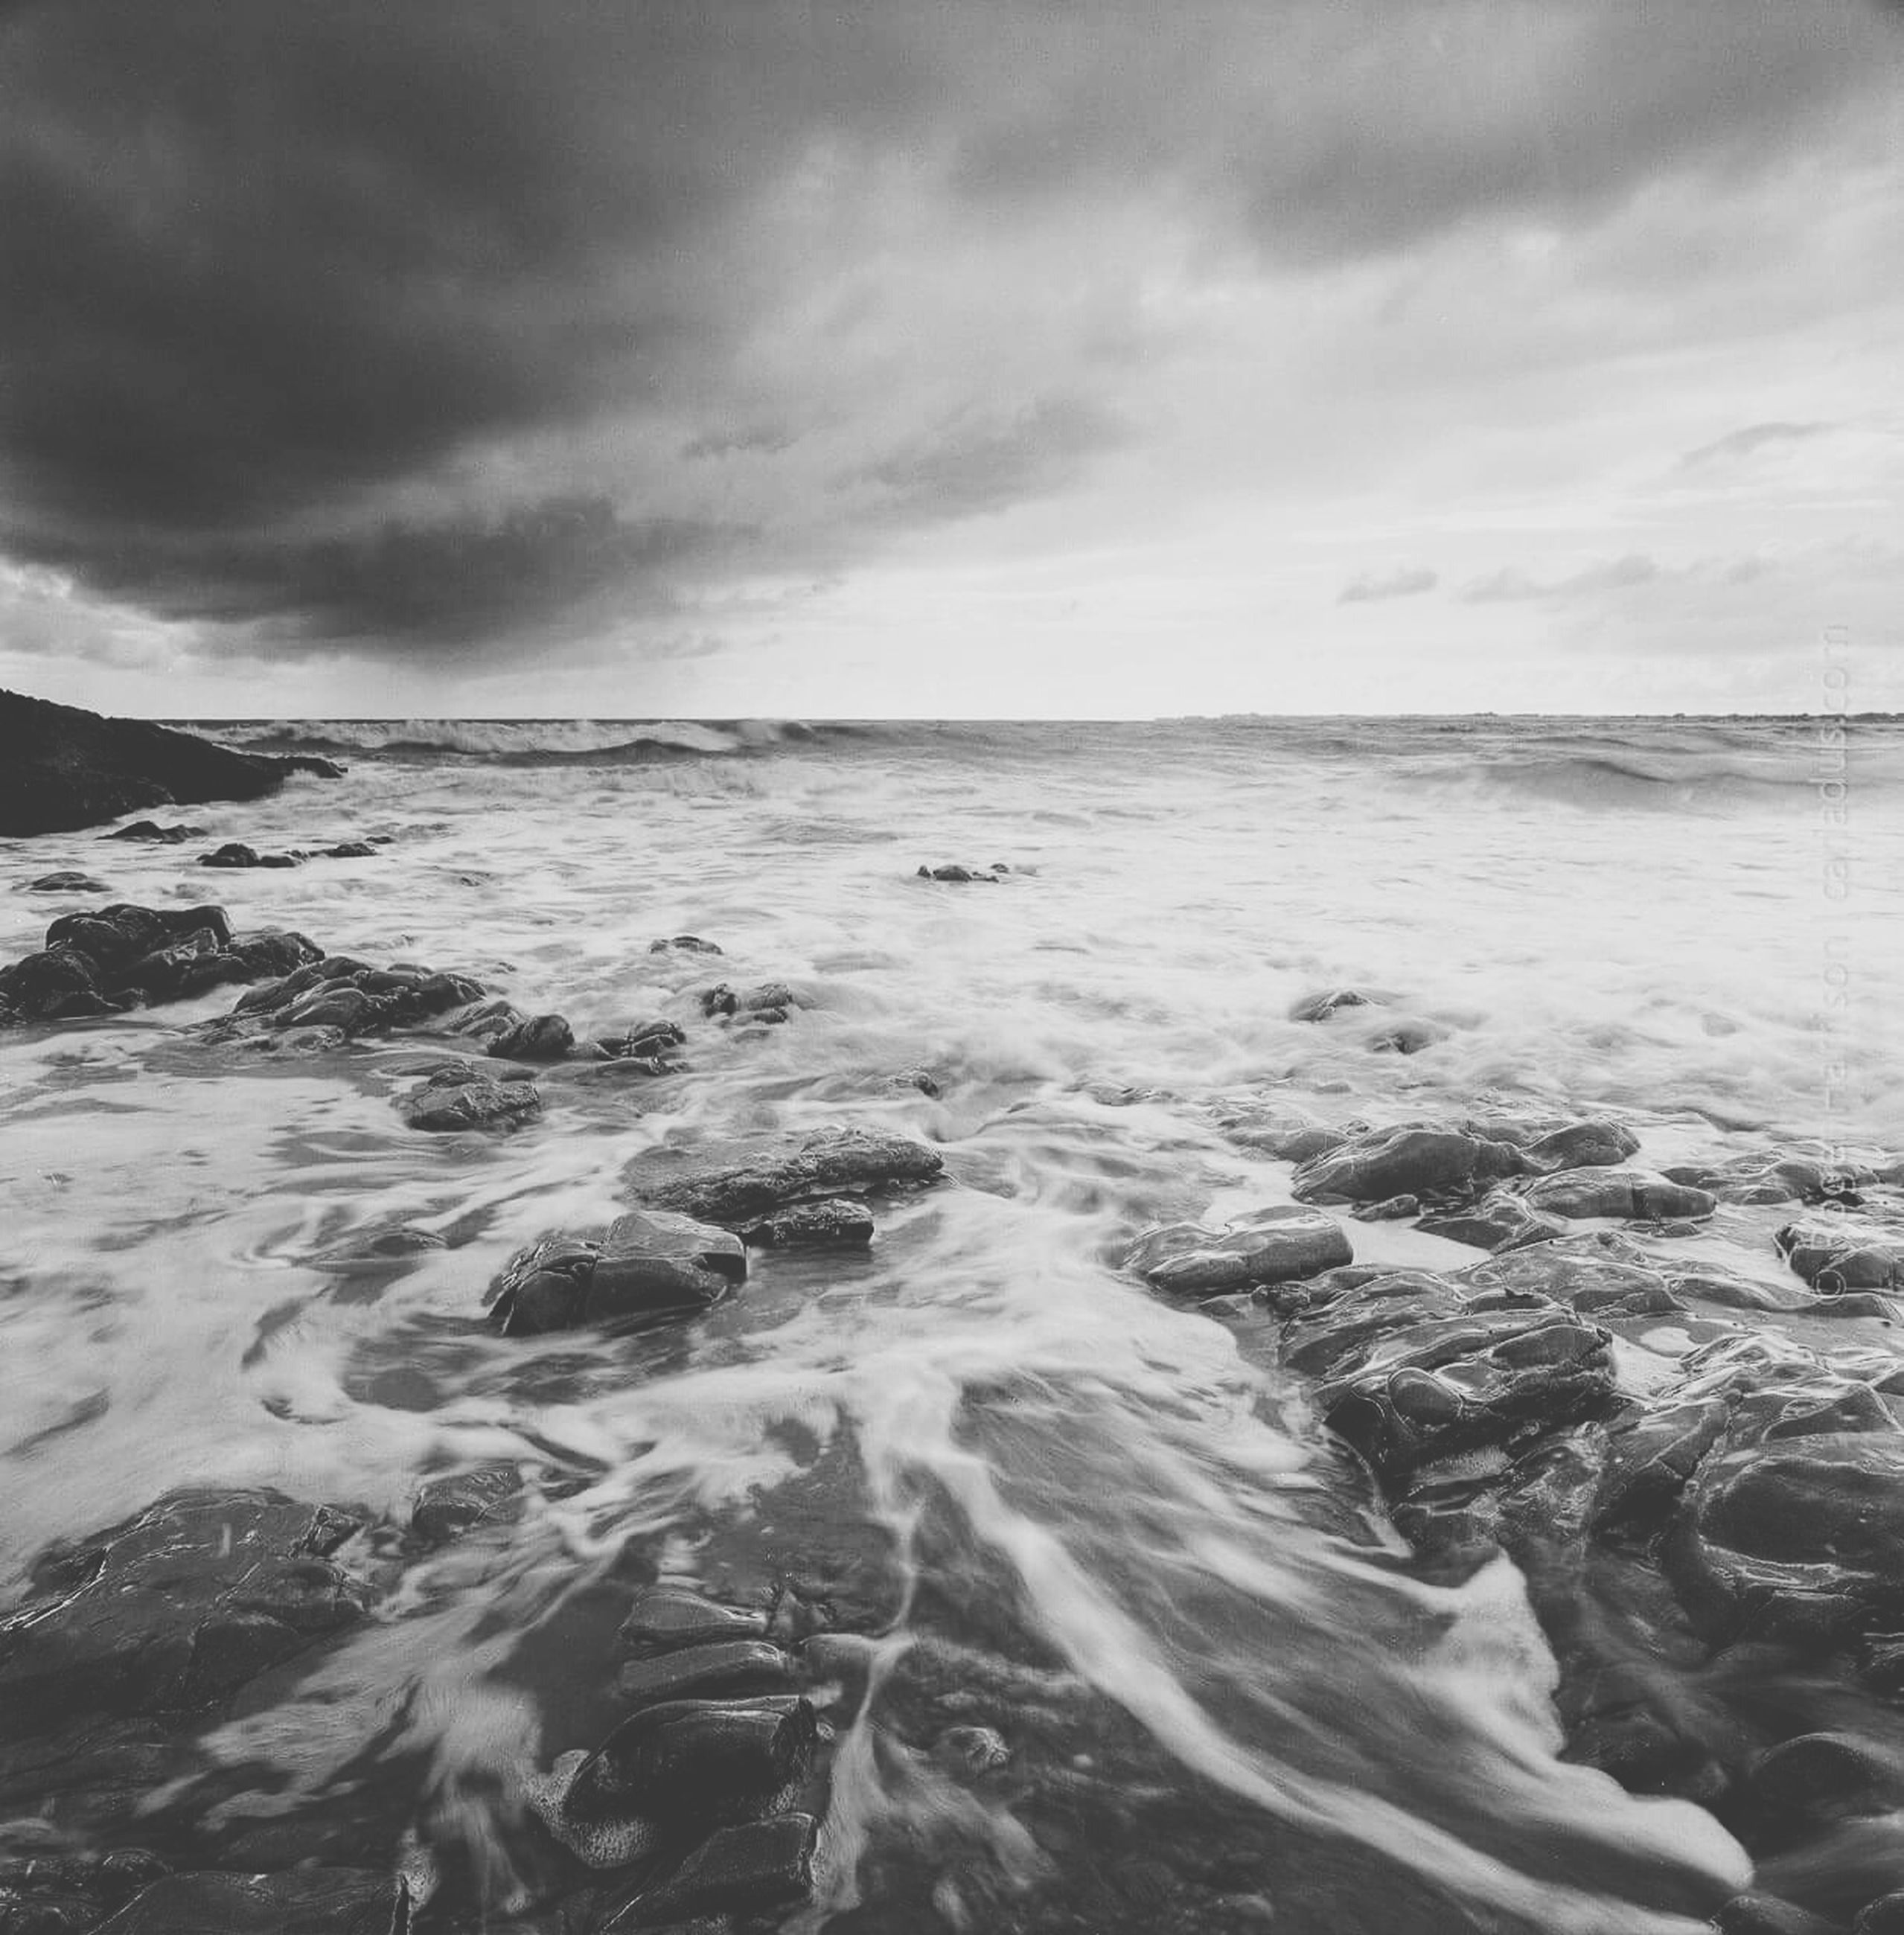 sea, water, sky, cloud - sky, scenics, tranquil scene, cloudy, beach, beauty in nature, tranquility, nature, horizon over water, shore, wave, cloud, idyllic, weather, overcast, surf, remote